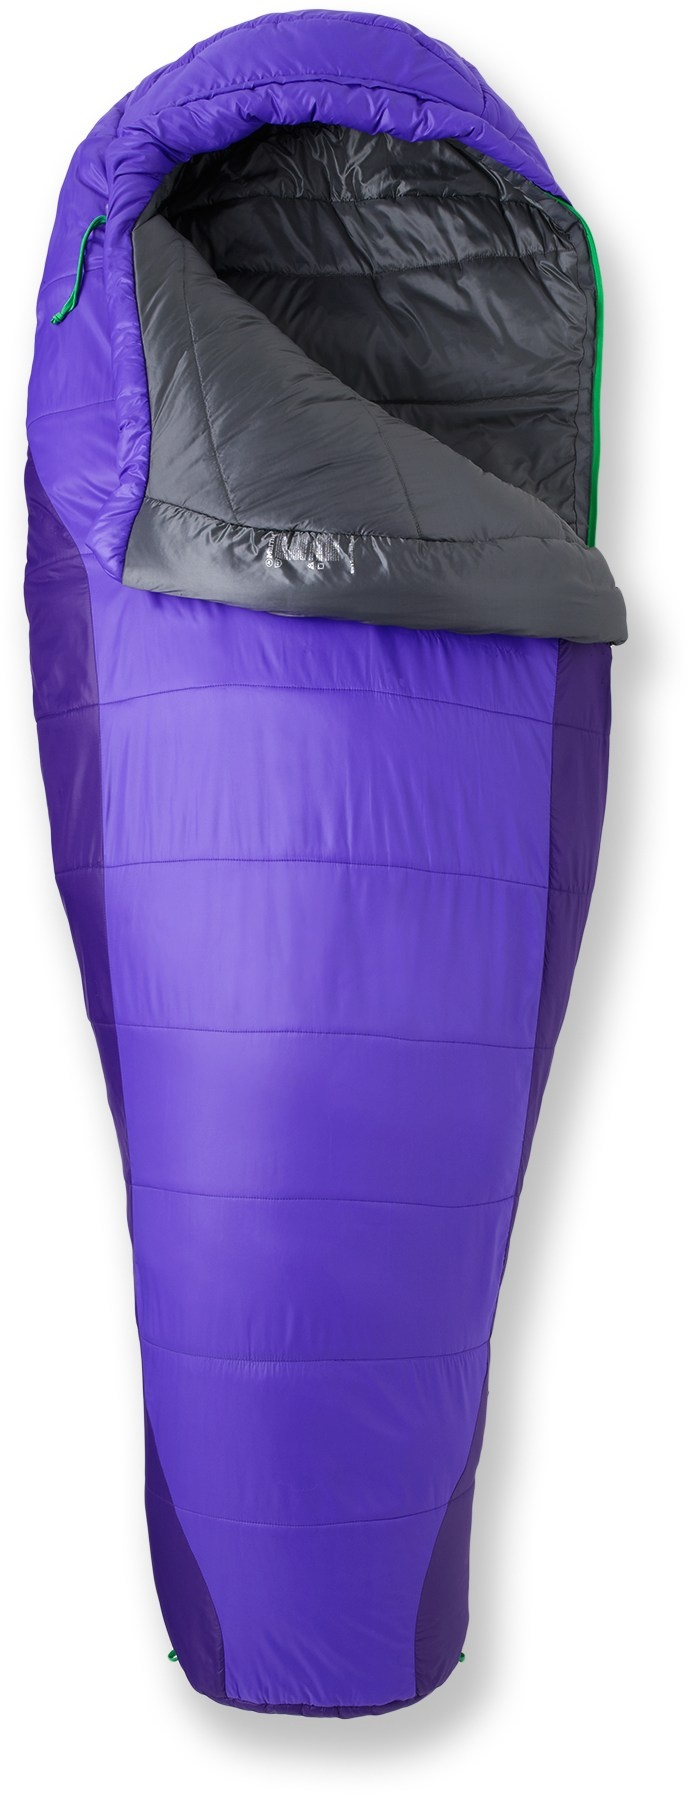 Stop The Chill Womens Marmot Sunset 20 Synthetic Fill Sleeping Bag Offers Innovative Construction To Keep You Warm Get It Only At Rei Through